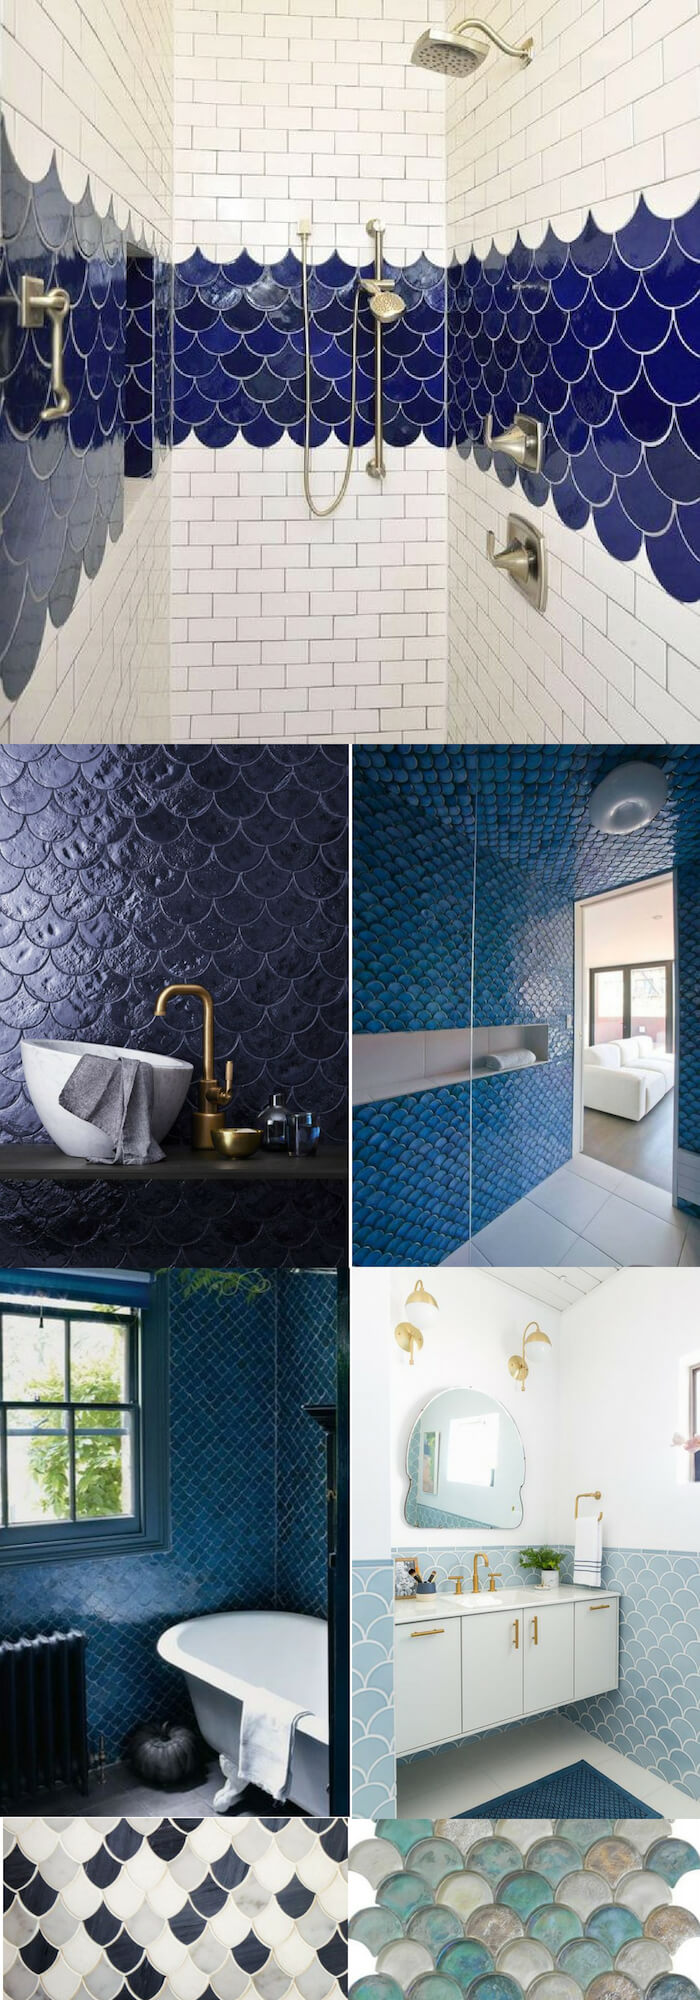 Moroccan fish scales wall | Unique Wall Tile Ideas for Bathroom Design